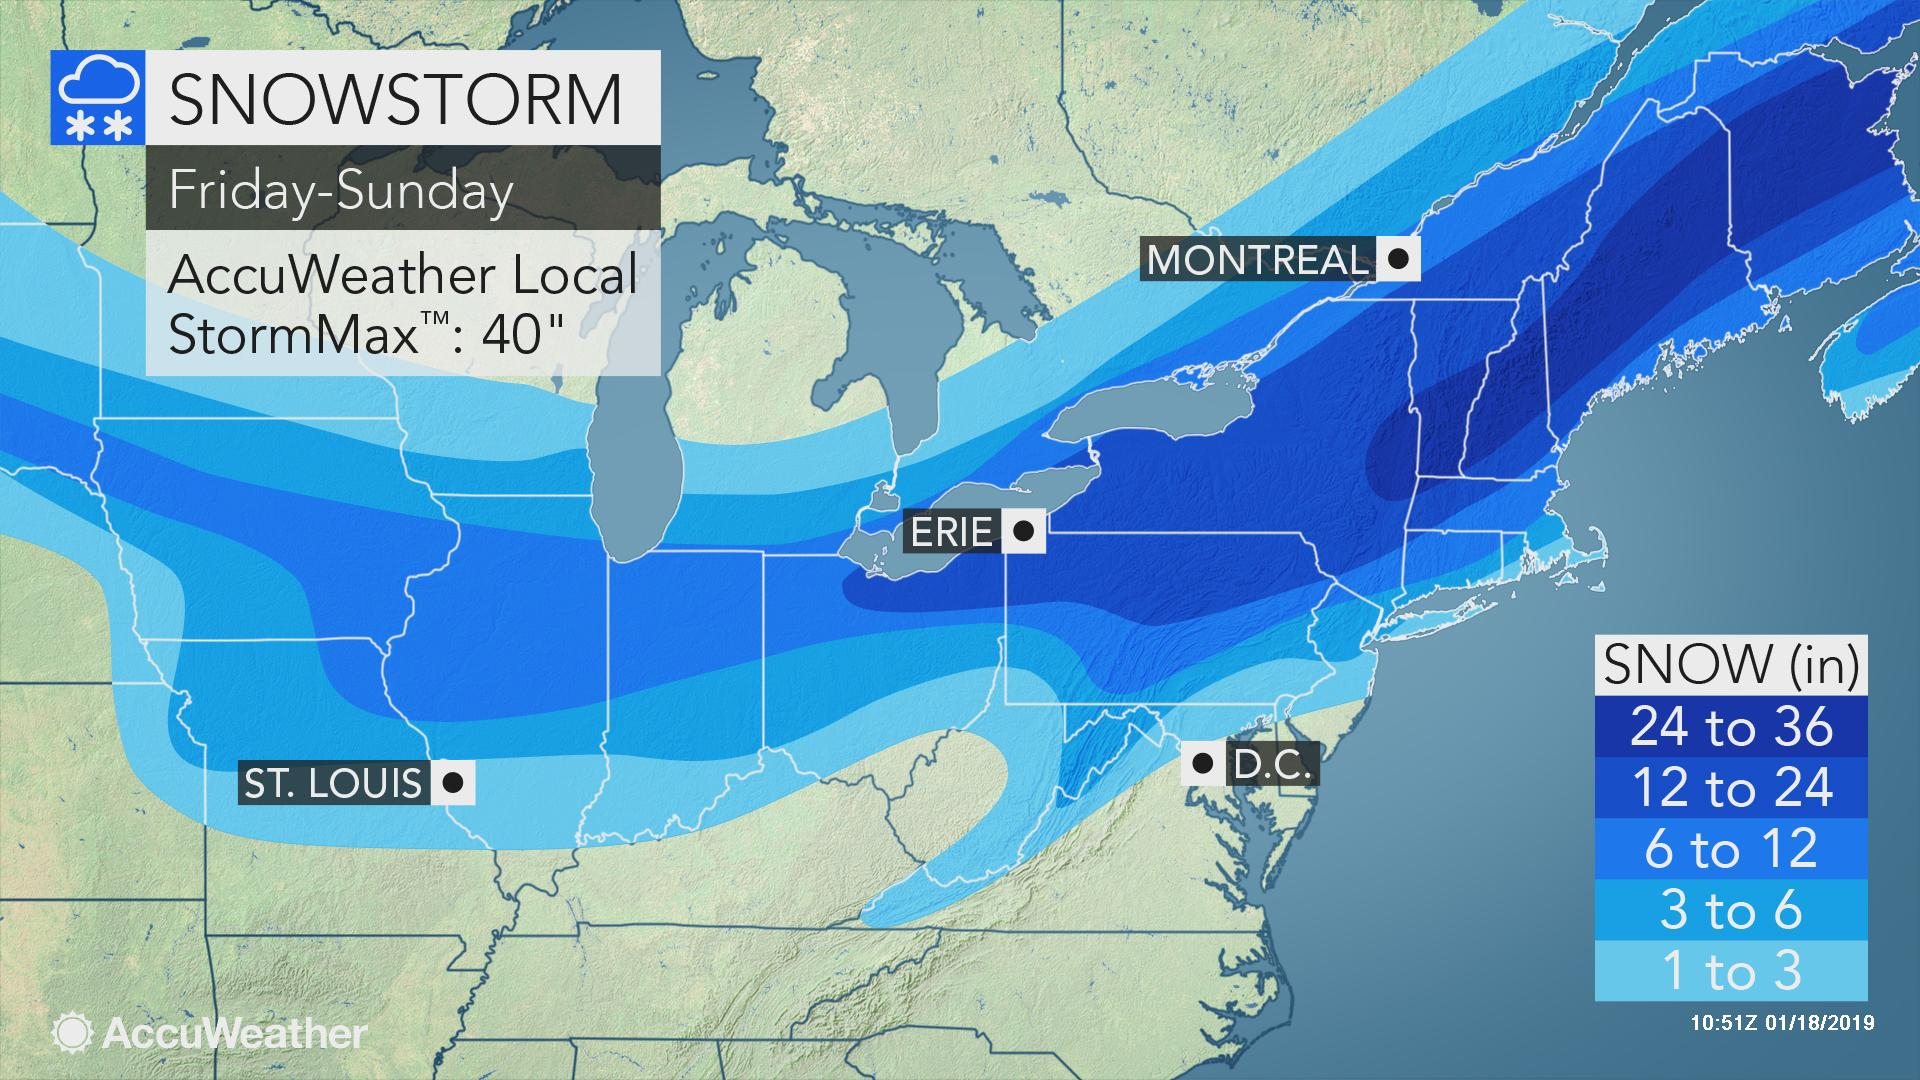 Immobilizing Blizzard With Feet Of Snow Looms For Interior Northeast - Snow Level Map California